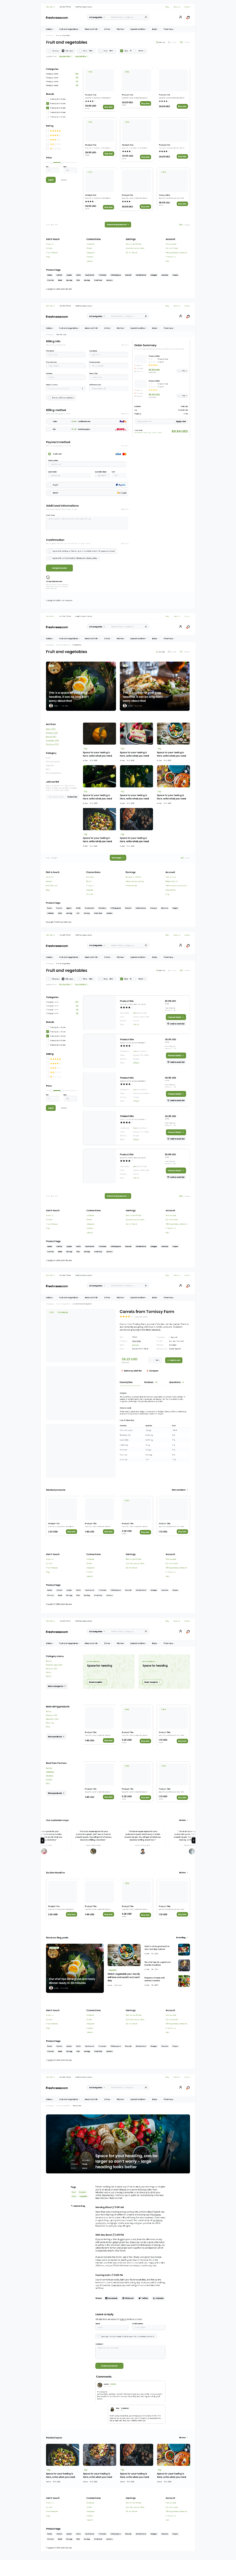 eCommerce Free Templates for Figma from UIGarage